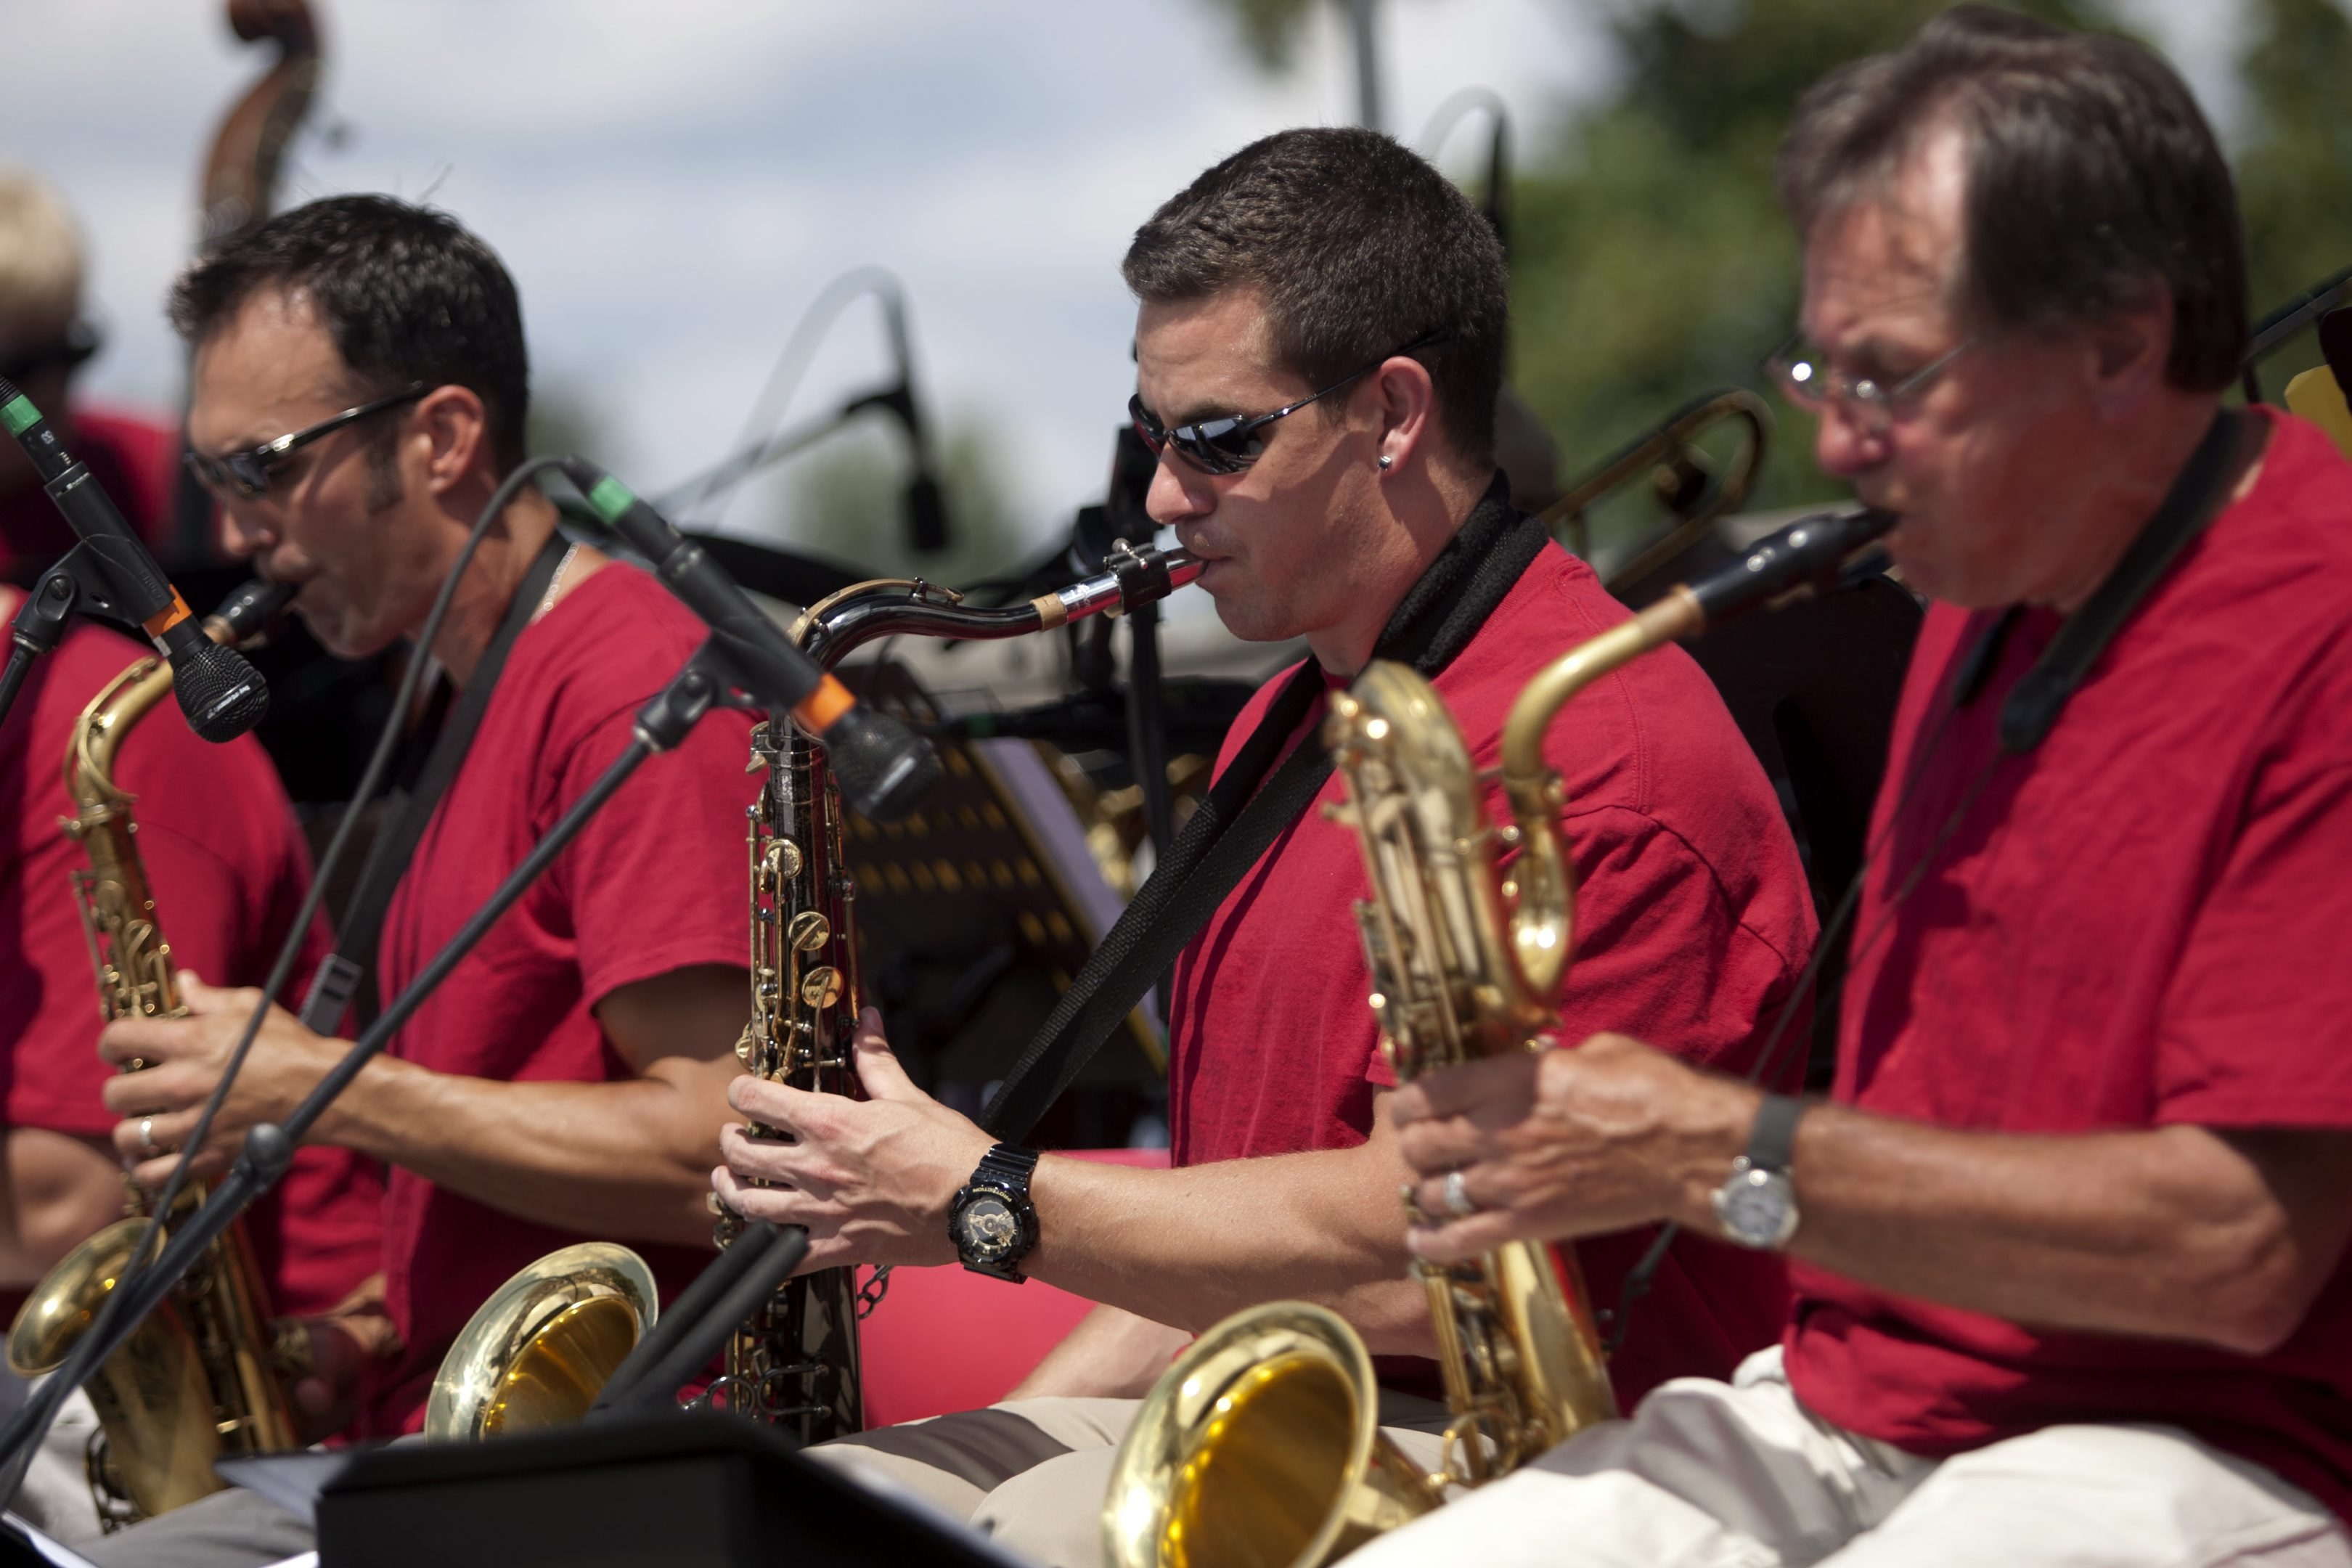 The Western New York Jazz Orchestra delivered original tunes by leader Dave Kayne as well as hot and fresh arrangements of swing favorites at the series' final performance.